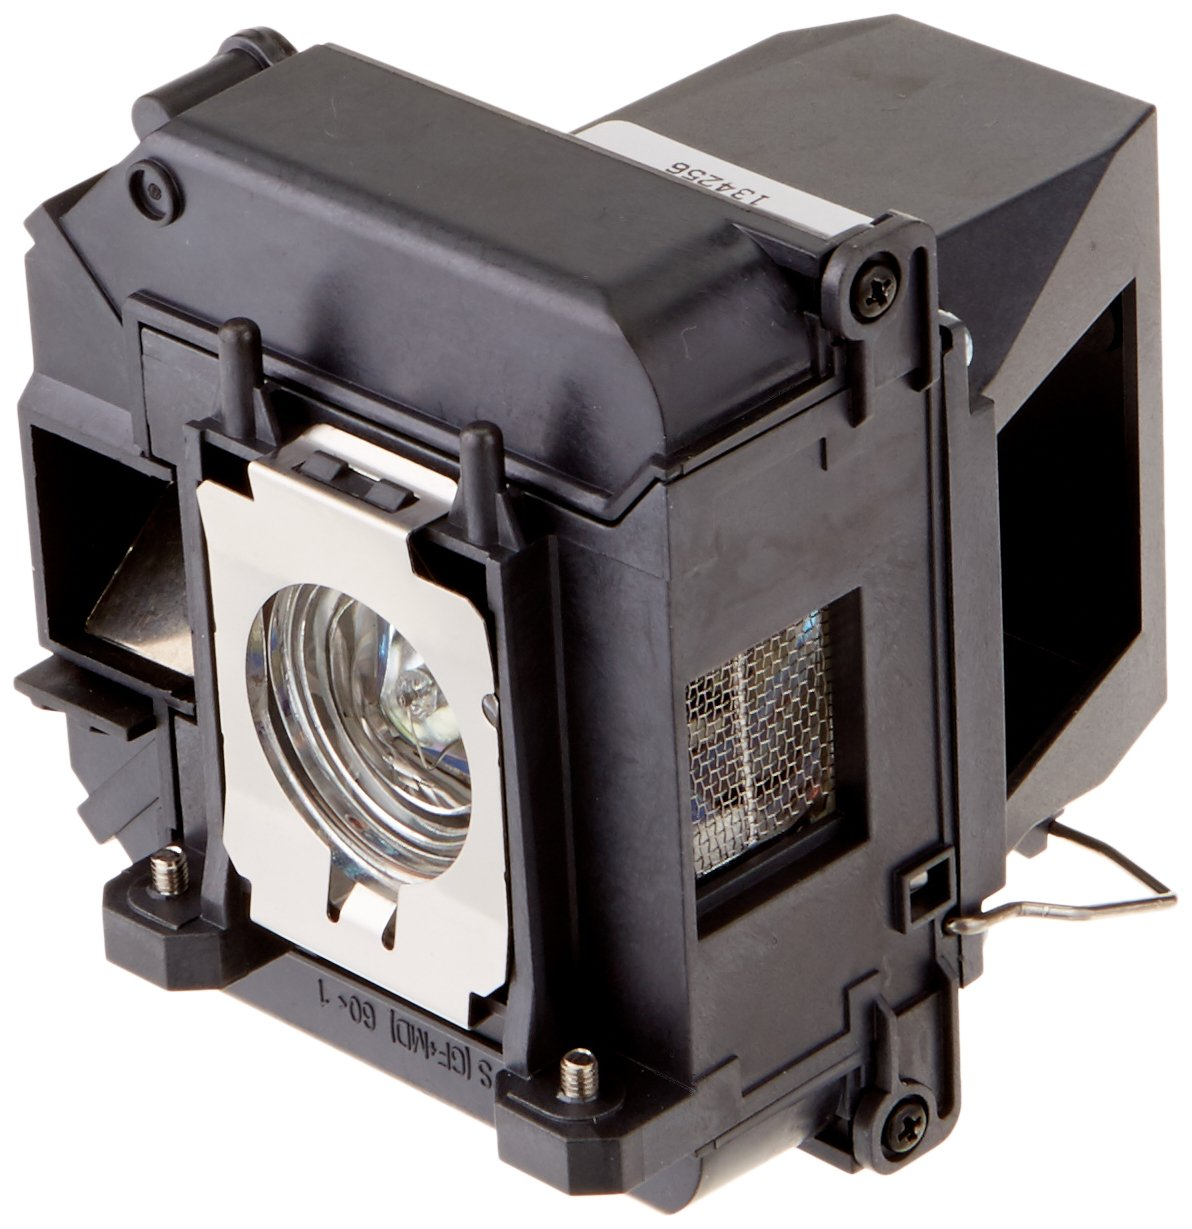 Epson V13H010L61 ELPLP61 Replacement Projector Lamp for PowerLite 915W/1835/430/435W/D6150 by Epson